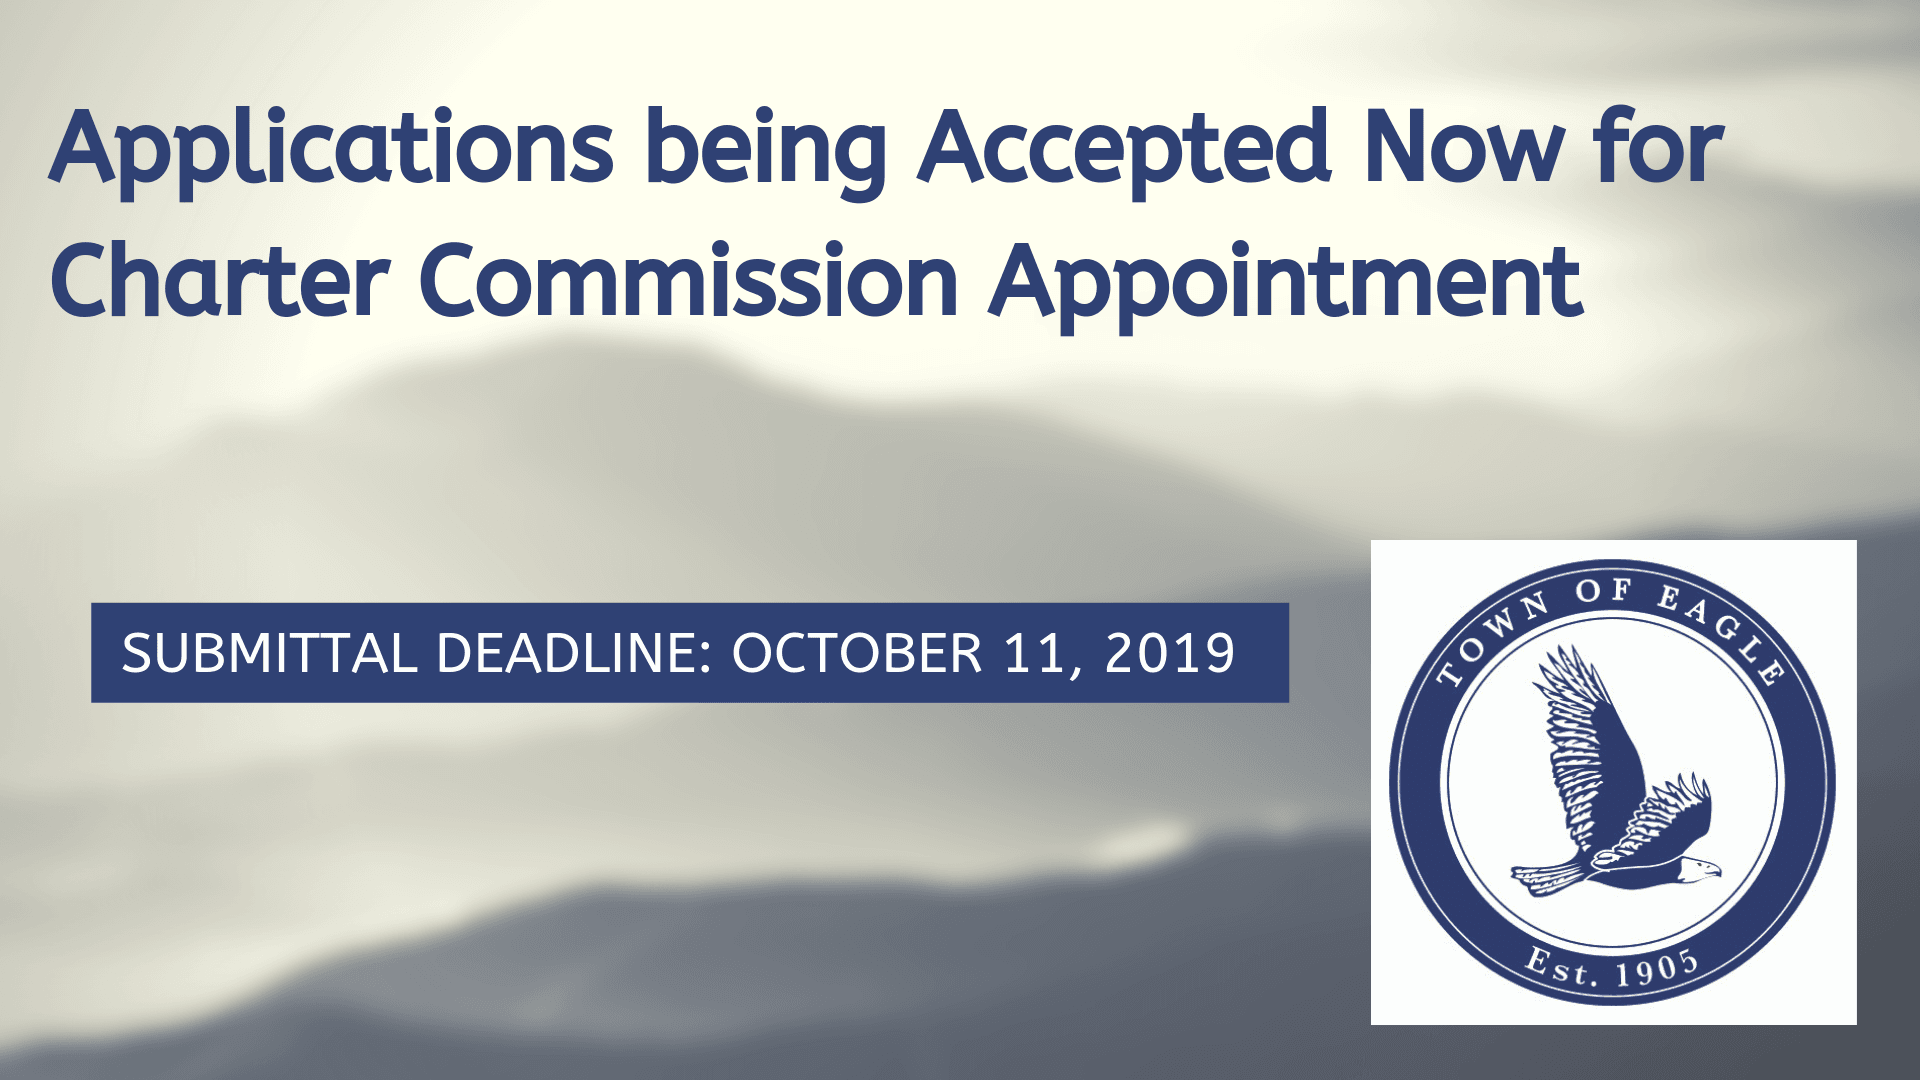 Applications being Accepted Now for Charter Commission Appointment (2)